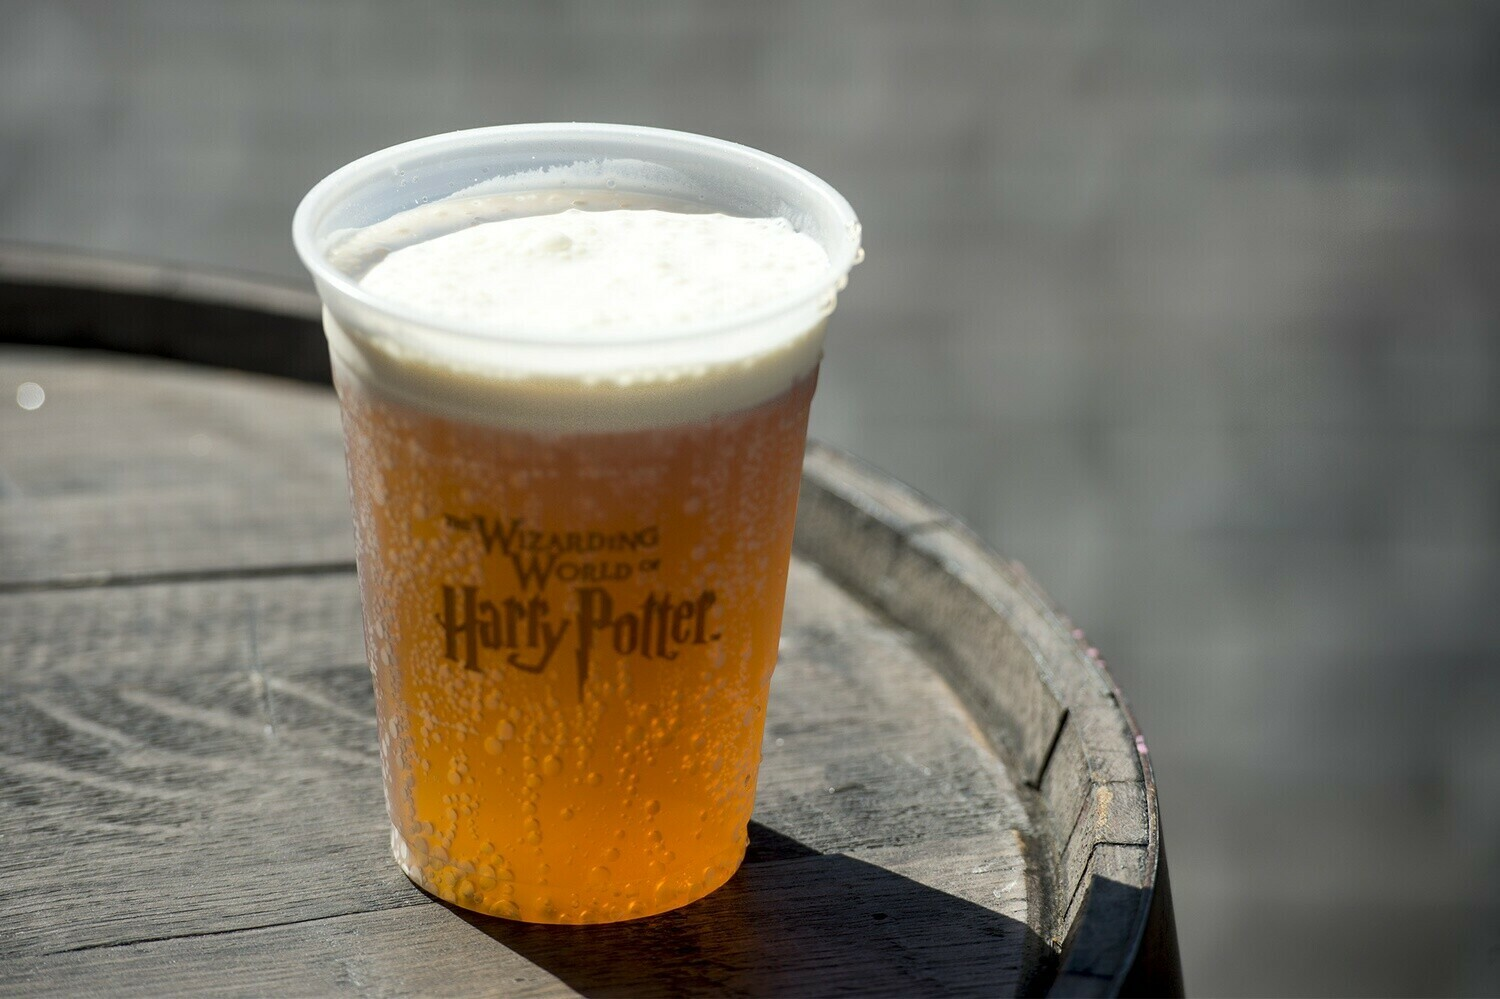 Harry Potter's Hogsmeade Butterbeer Flavoring (Unsweetened)